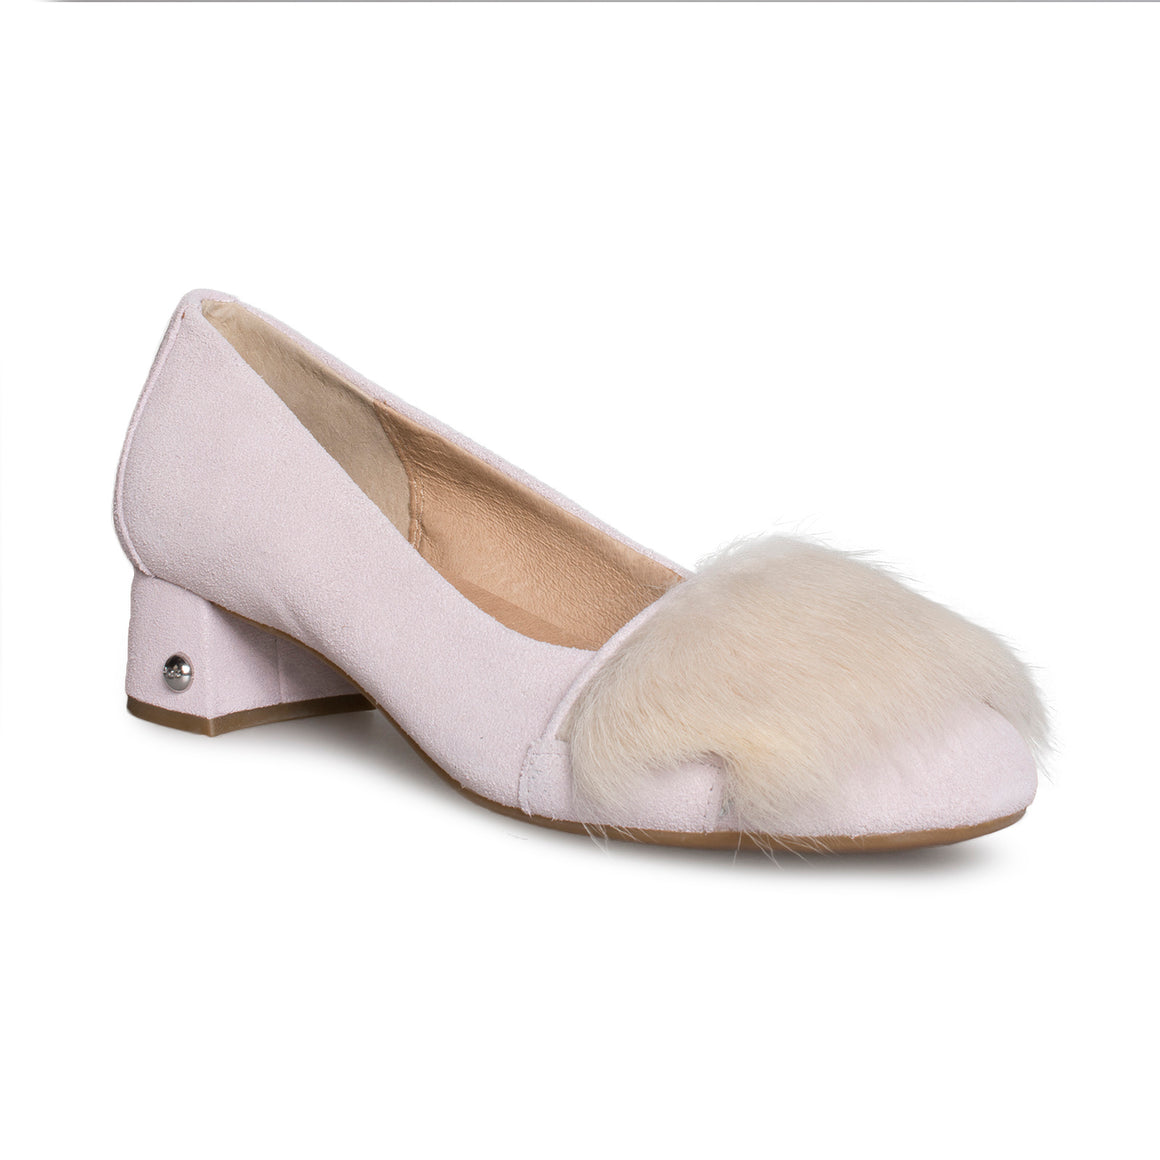 UGG Koa Fluff Heel Seashell Pink Shoes - Women's